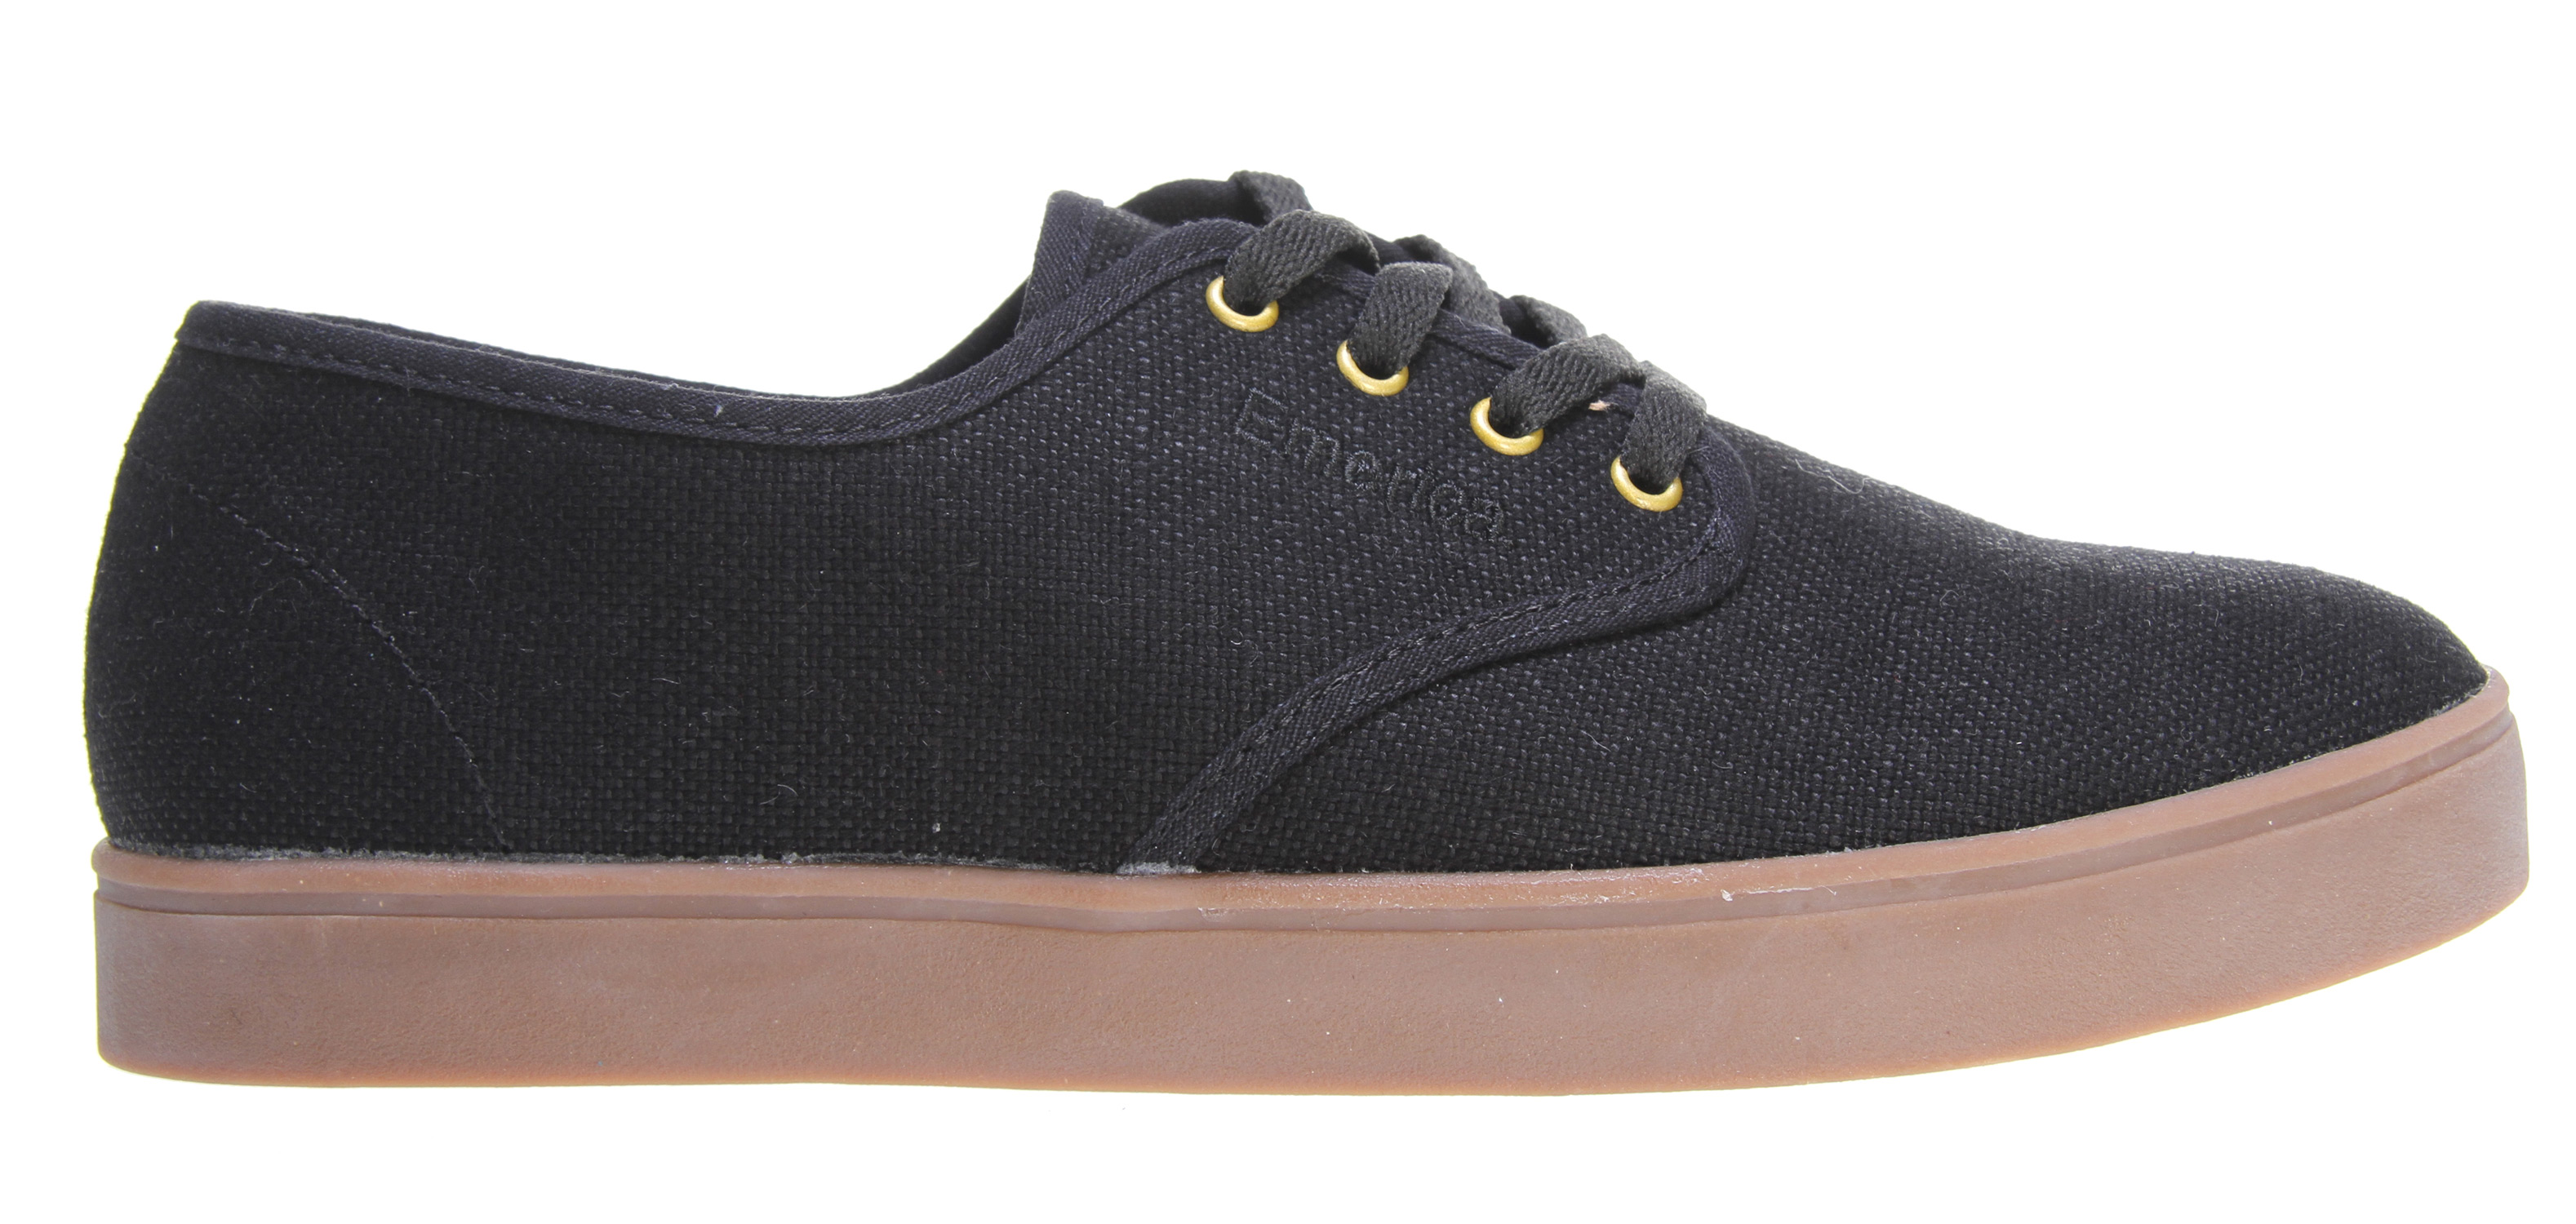 Skateboard Emerica team rider-inspired and desired, the Laced is a nice-priced, super-thin skate chiller that is, despite its name, meant to be worn without laces. just like Andrew runs 'em. Don't worry, a special hidden elastic band will keep these pups snug. But, we'll throw a set of laces in the box in case you want to tie up anyway.Key Features of the Emerica Laced Skate Shoes: Lightweight textile or suede upper materials STI Foam Lite level 1 footbed 400 NBS natural gum rubber cupsole - $44.95